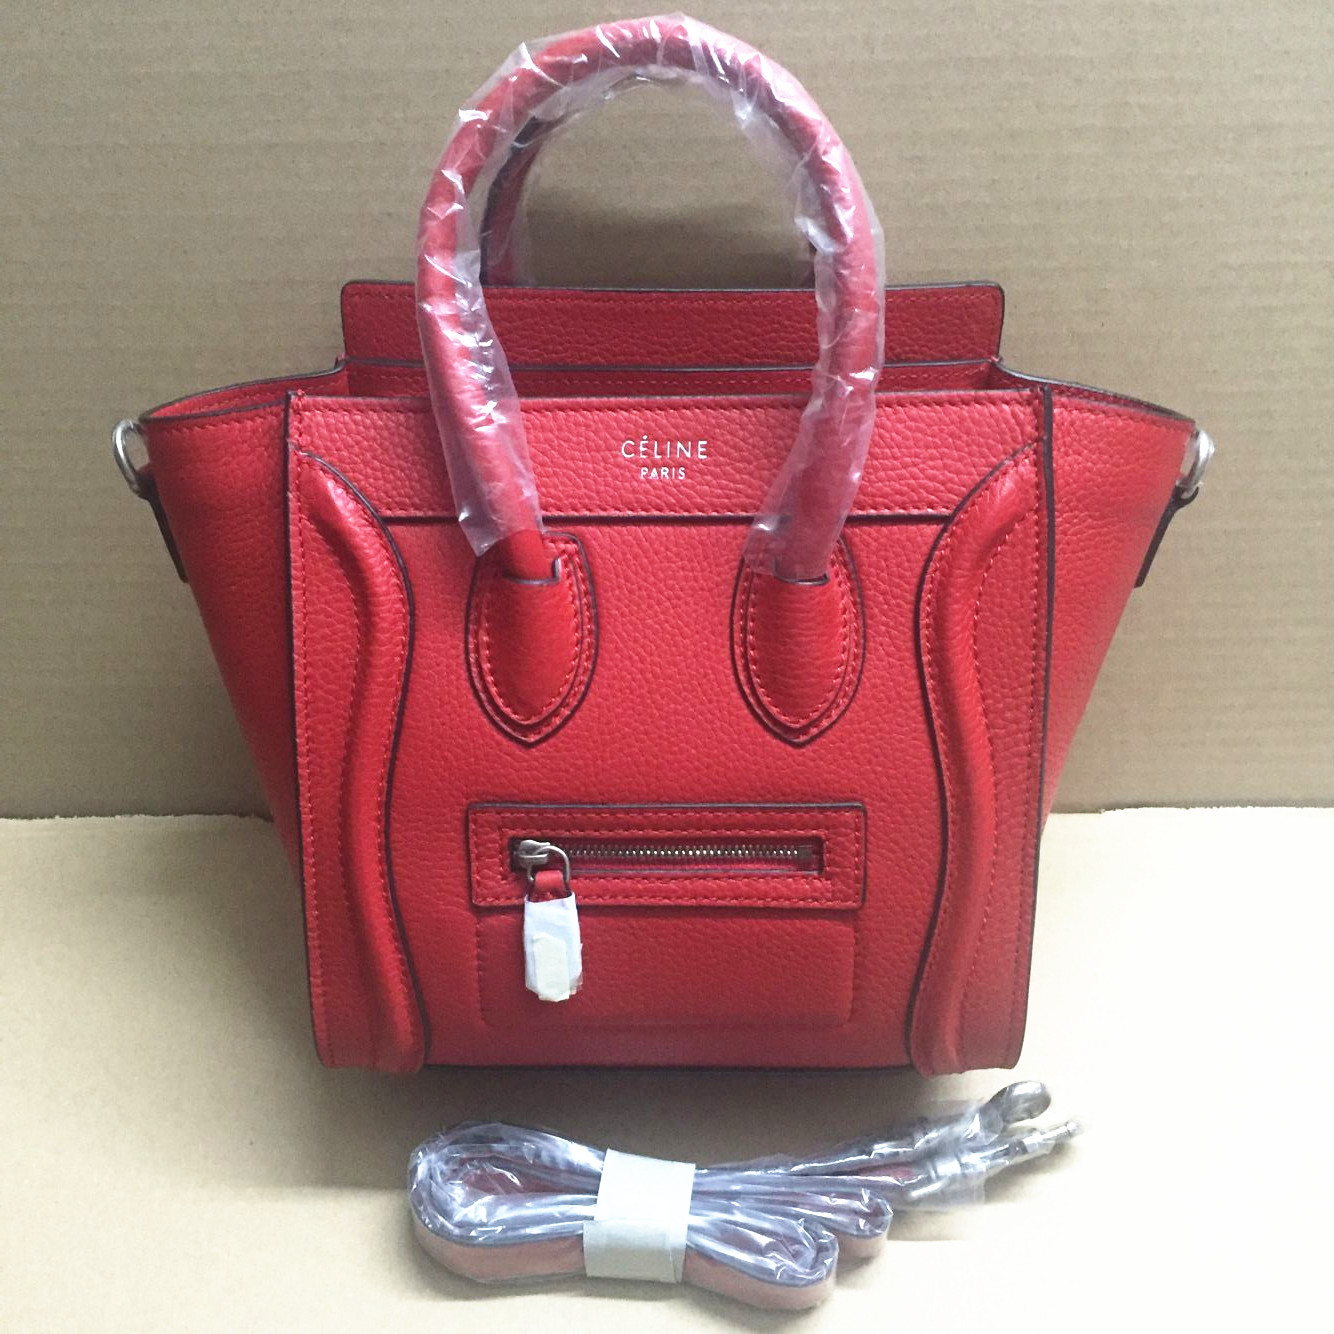 Celine Small Luggage Togo Leather Red Bag